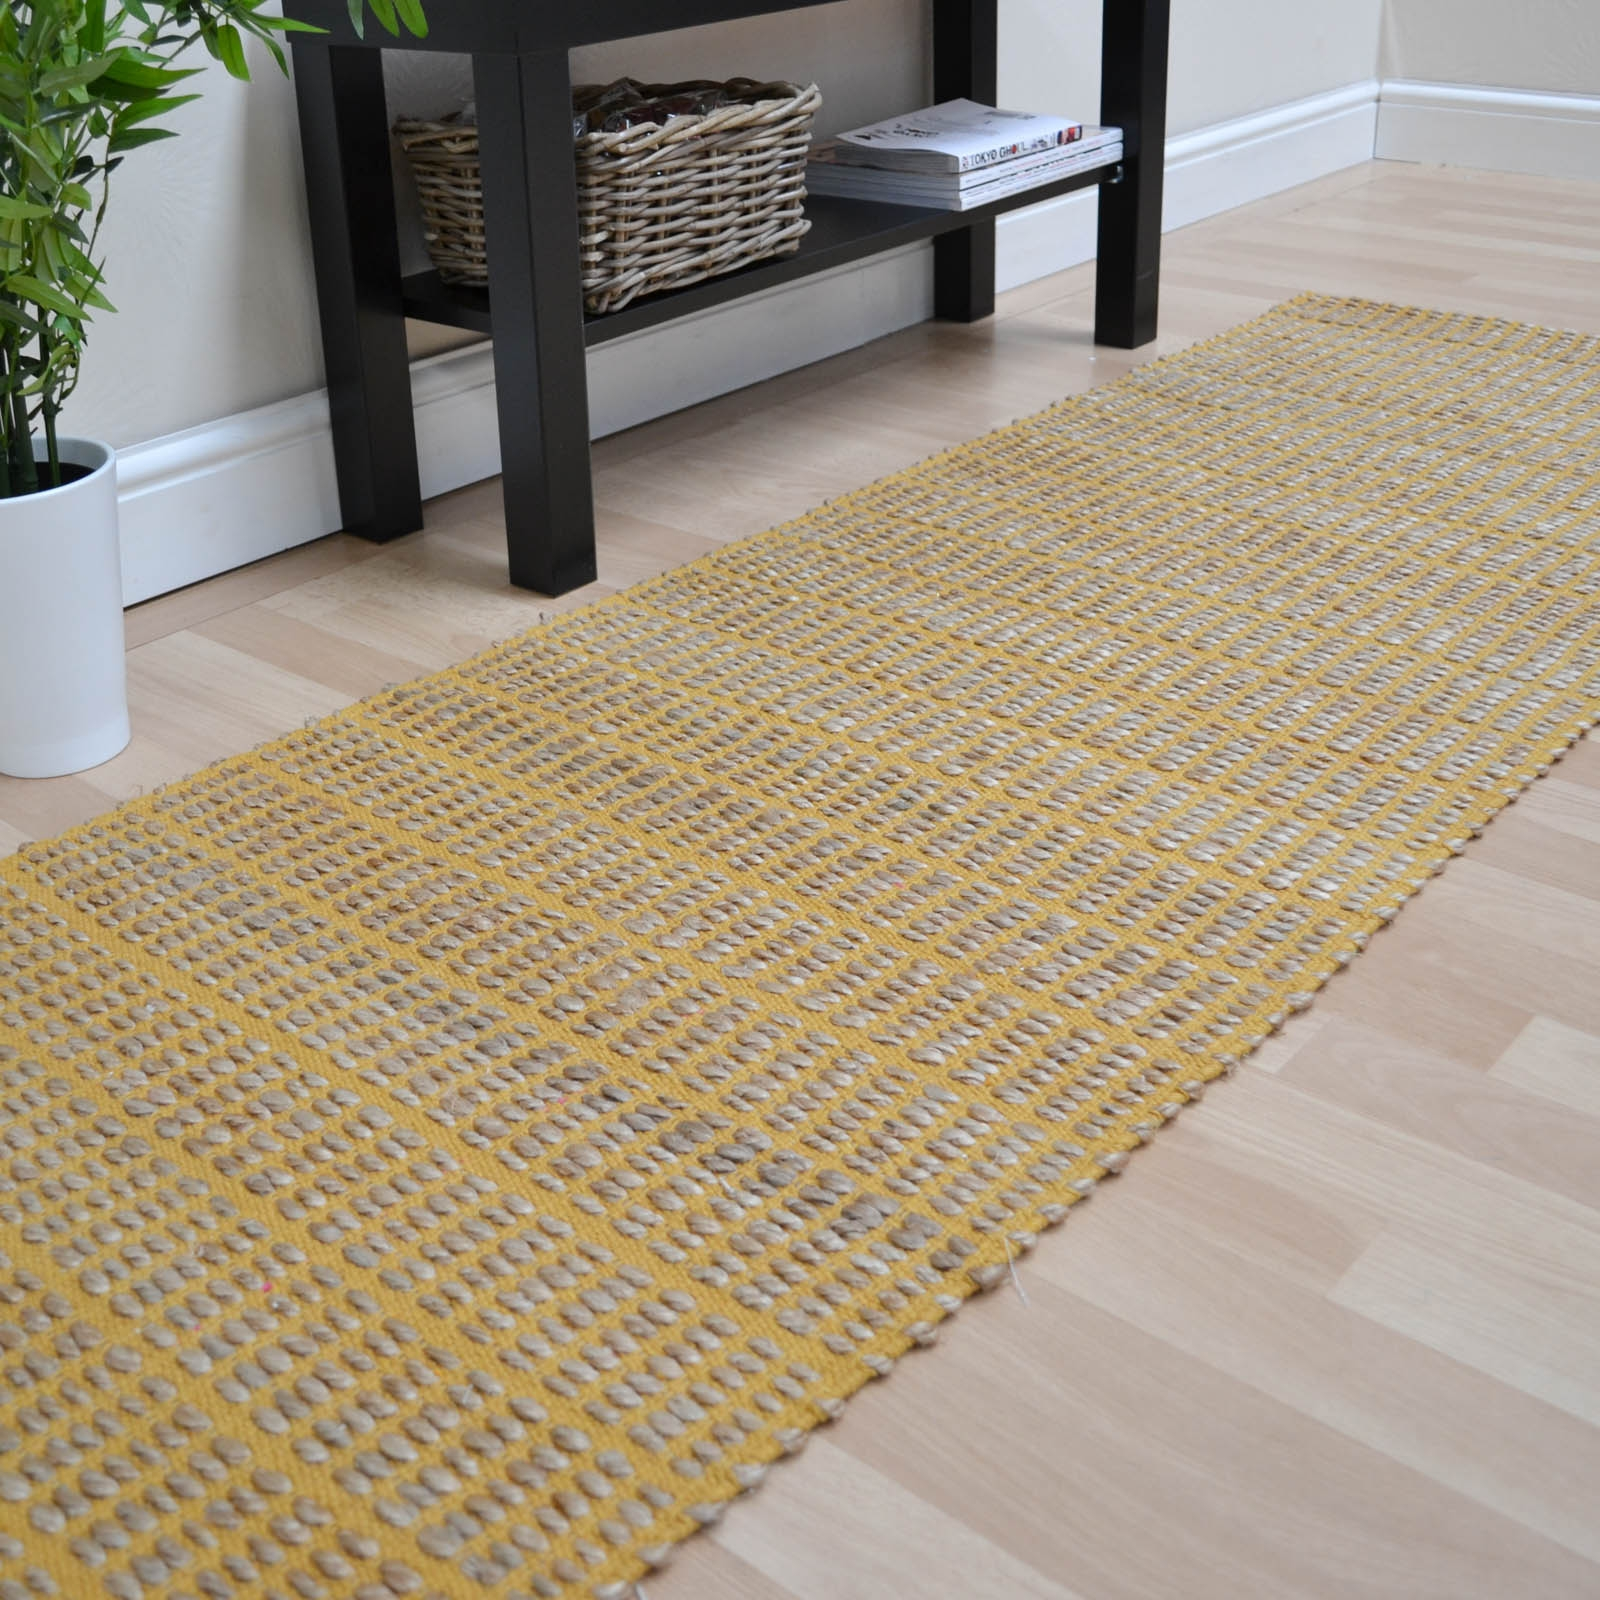 Hall Rugs Uk Roselawnlutheran Within Hallway Runner Rugs (View 11 of 20)